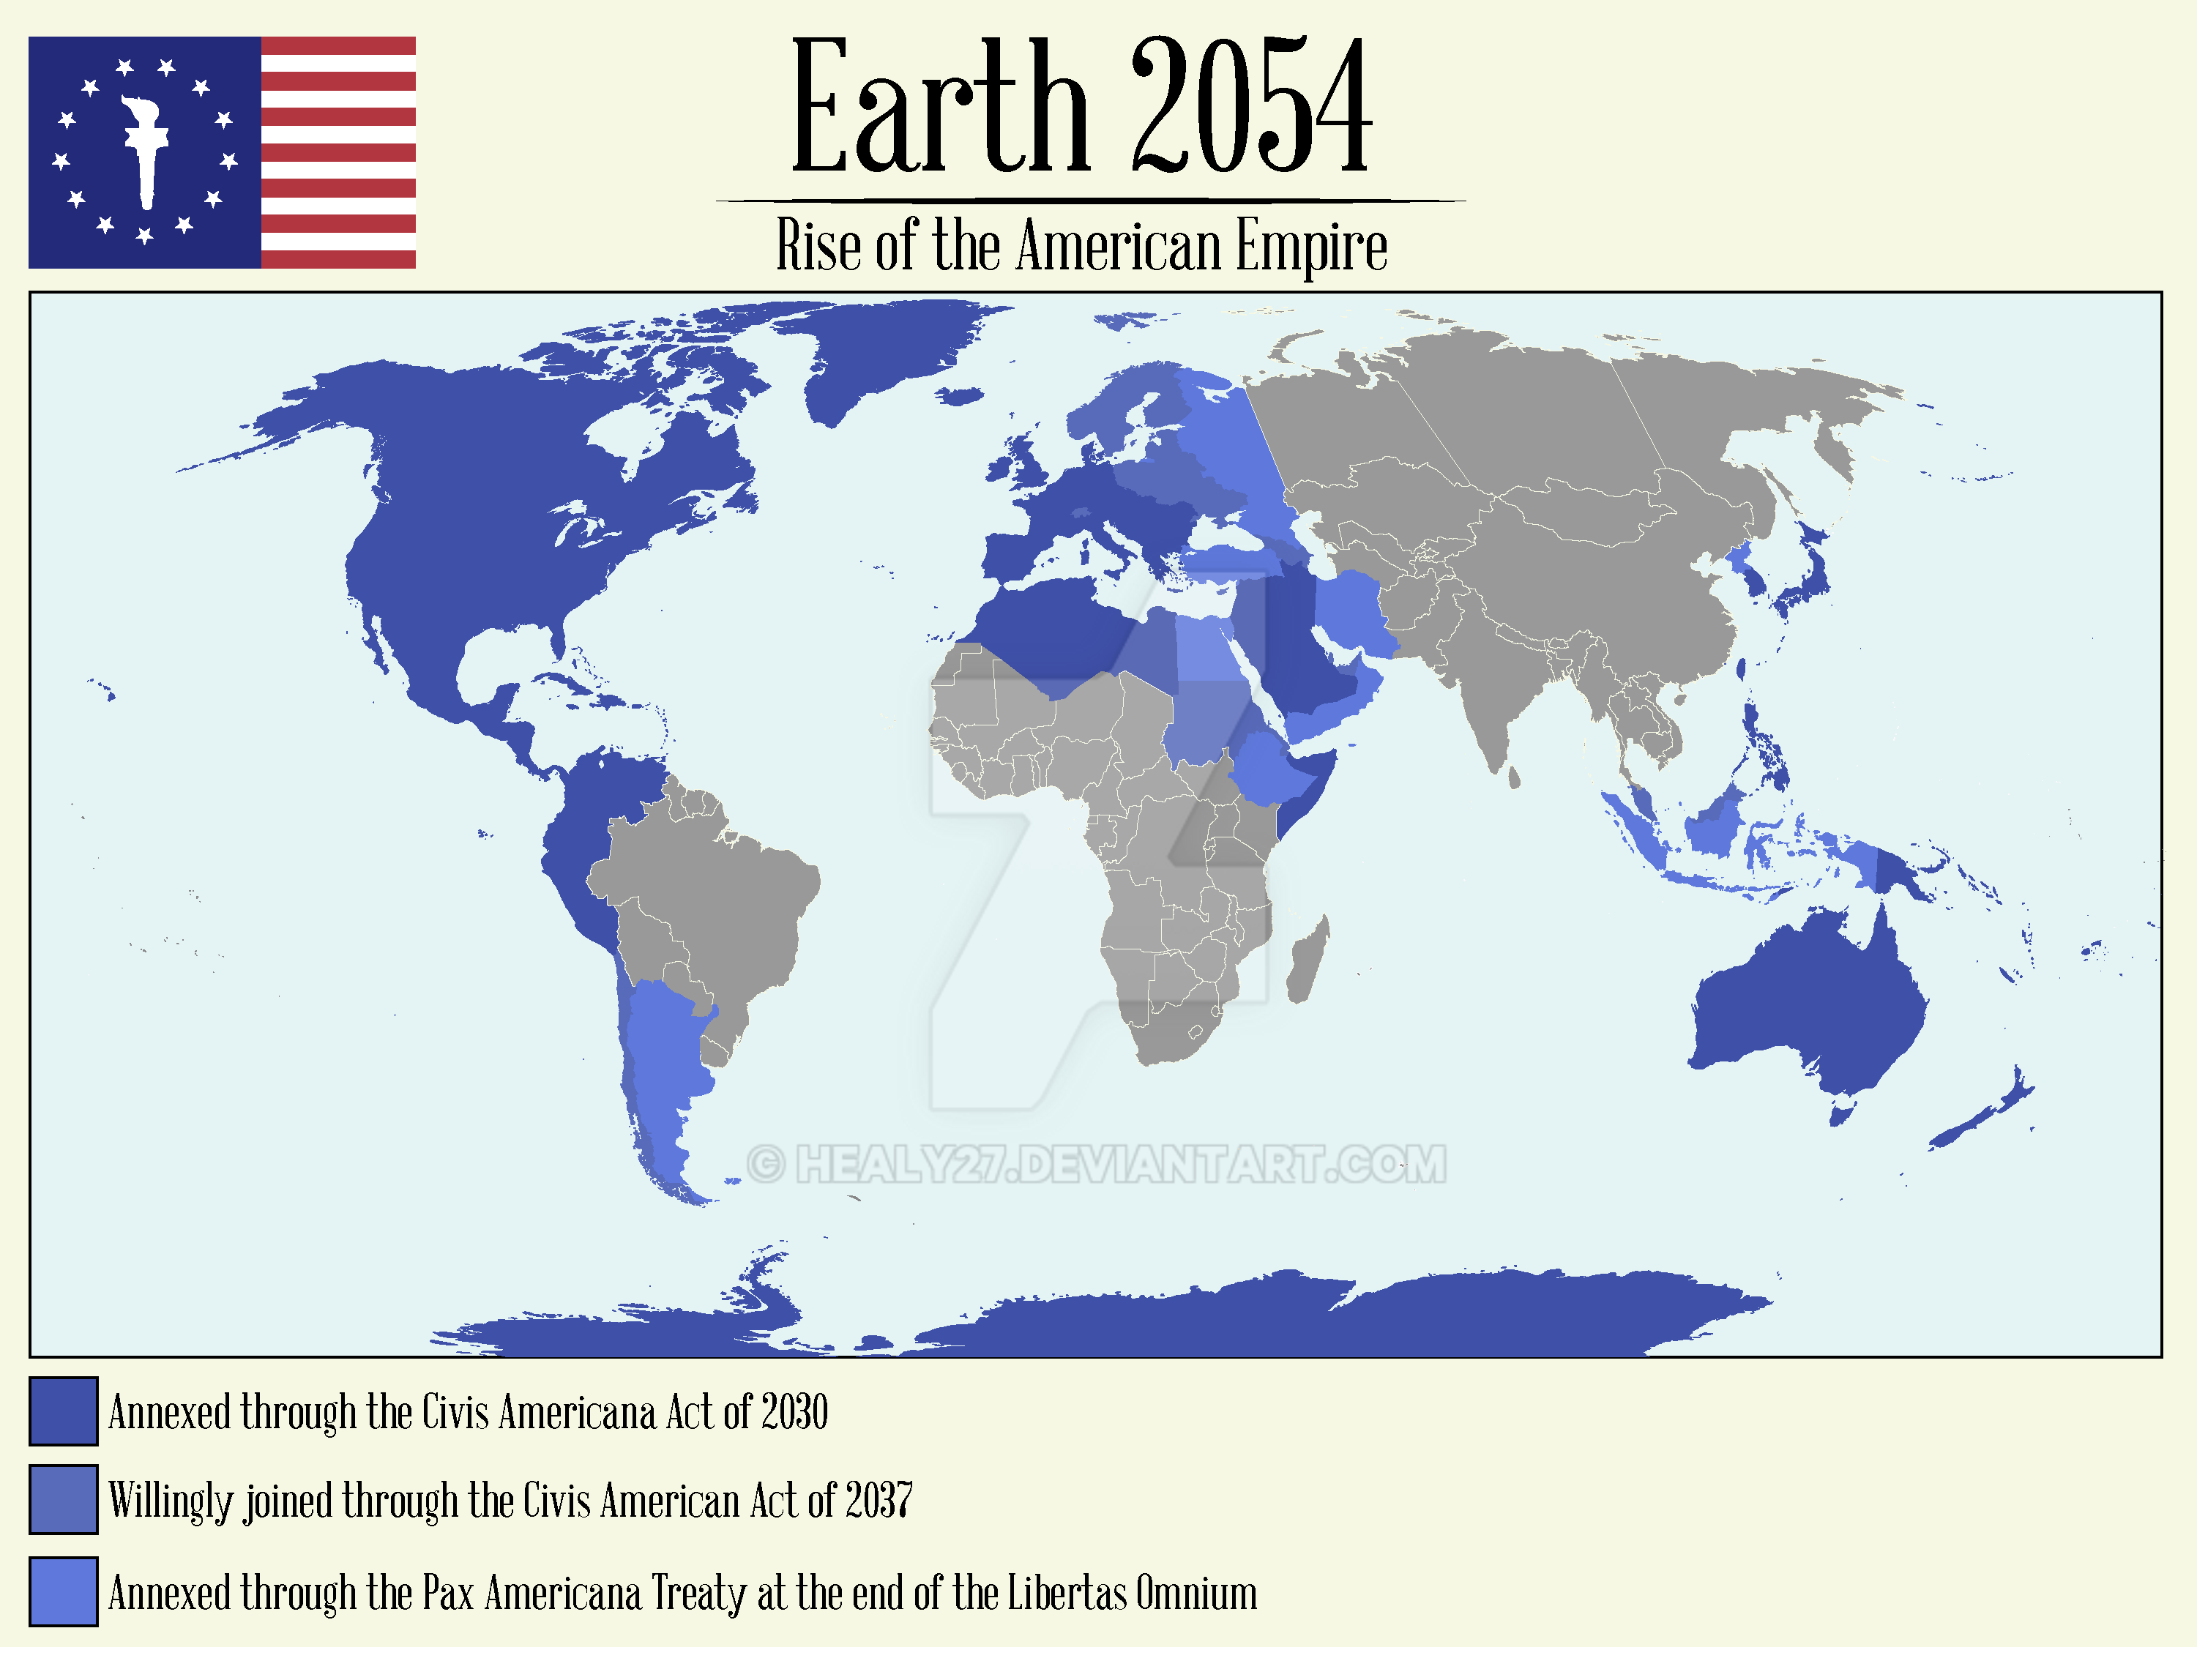 Map of the American Empire 2054 by Healy27 on DeviantArt